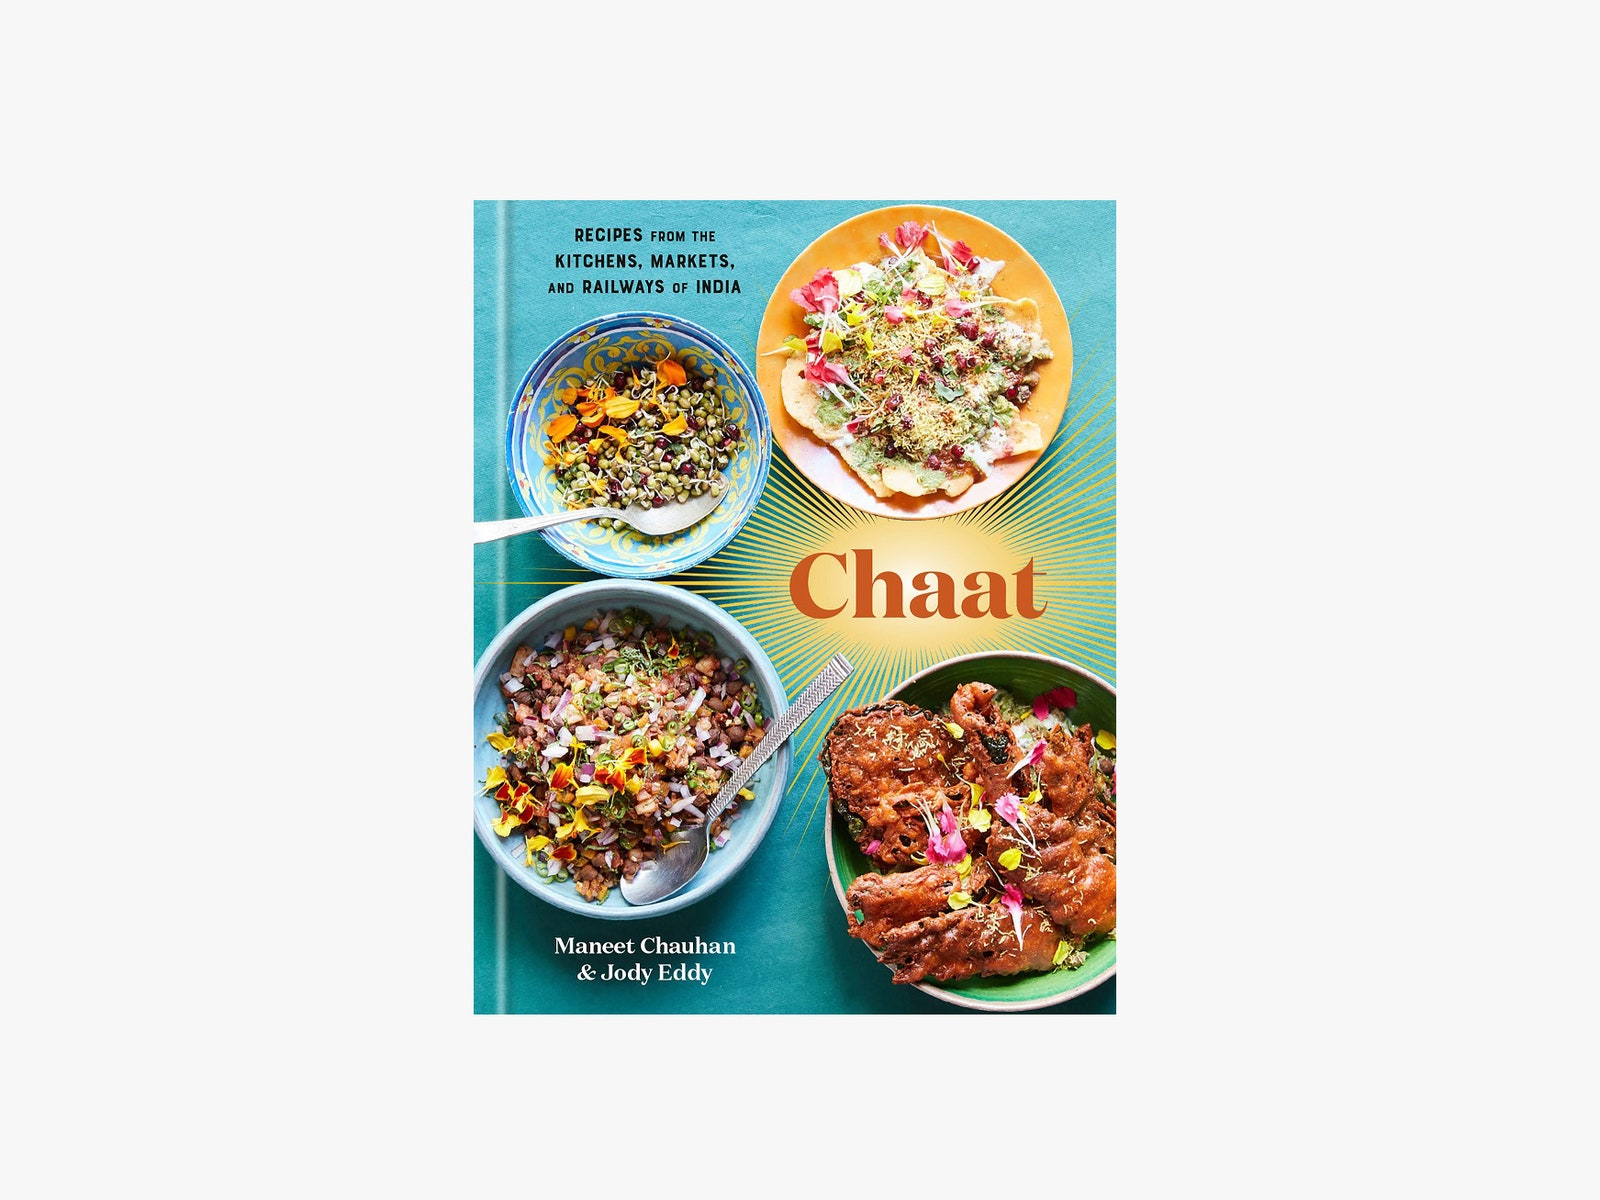 Review Chaat Recipes From The Kitchens Markets and Railways of India